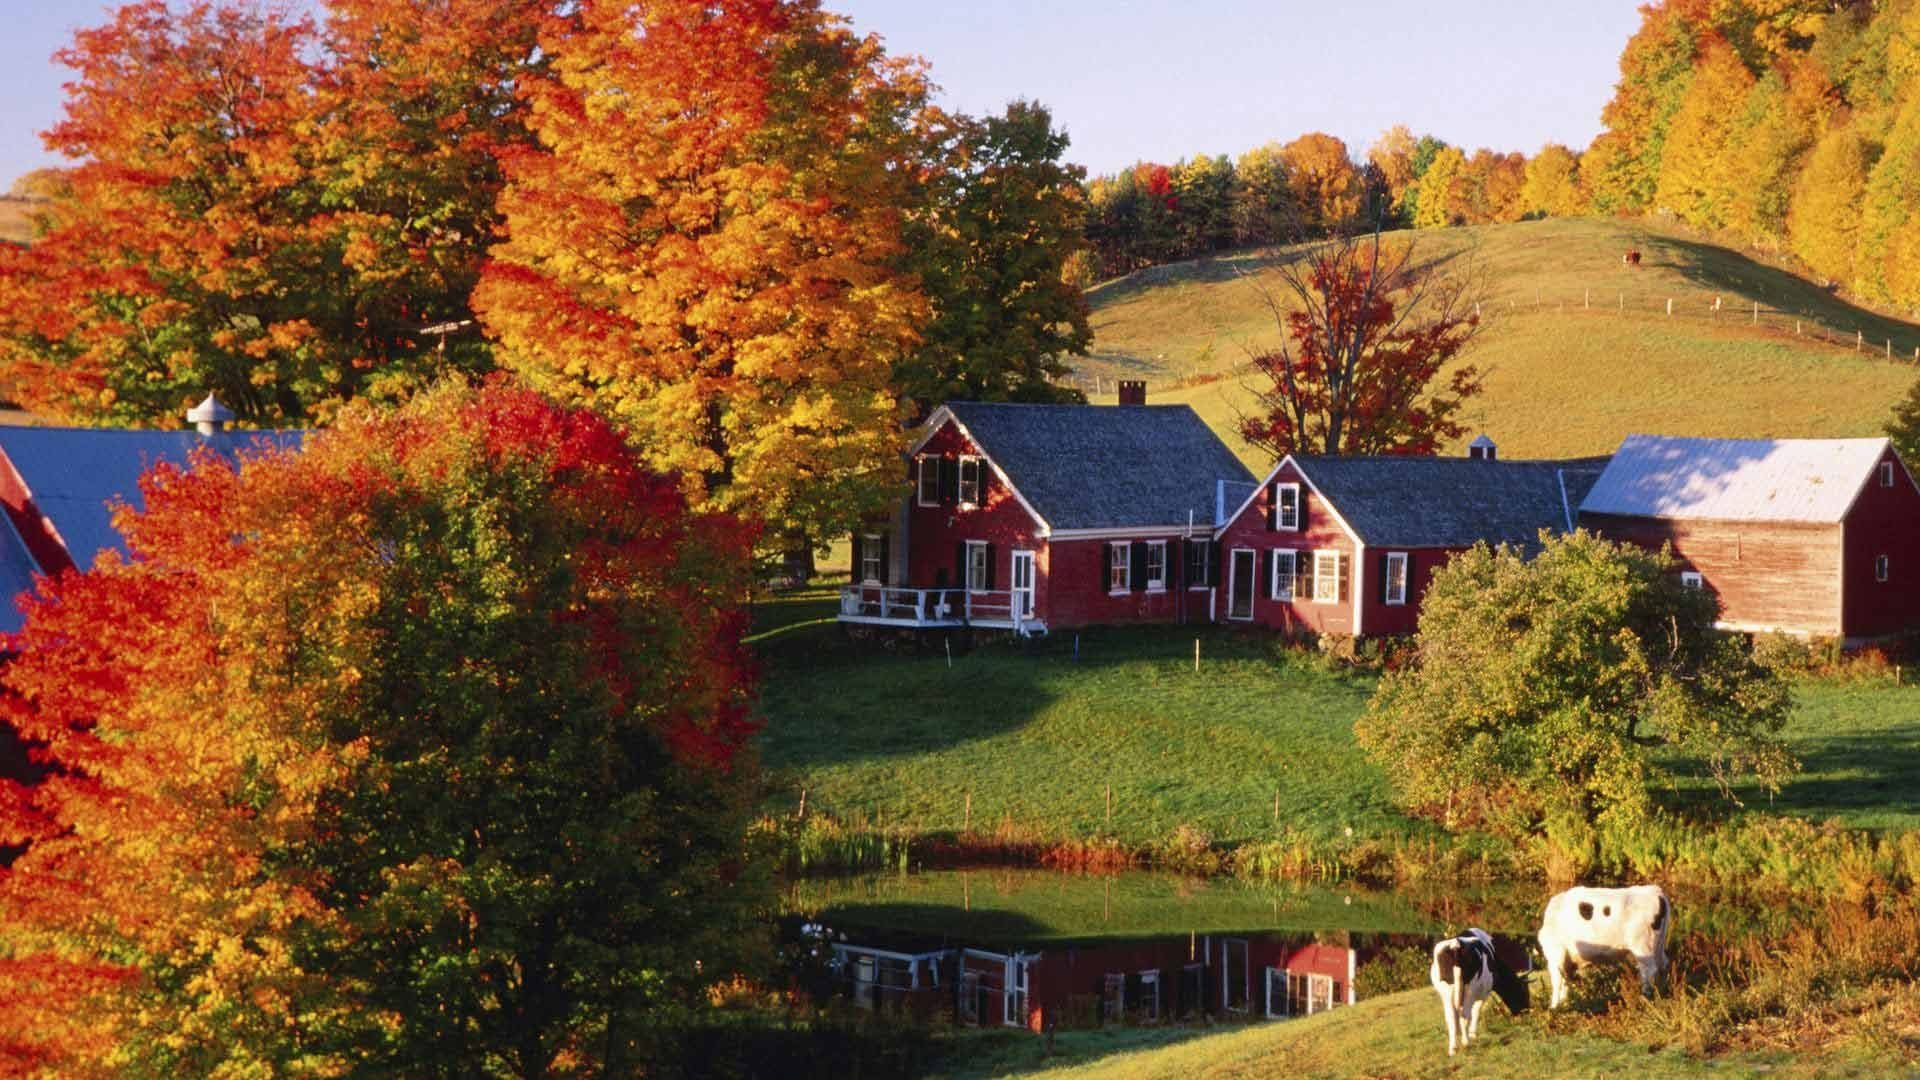 Vermont In Autumn Hd Wallpapers Top Free Vermont In Autumn Hd Backgrounds Wallpaperaccess